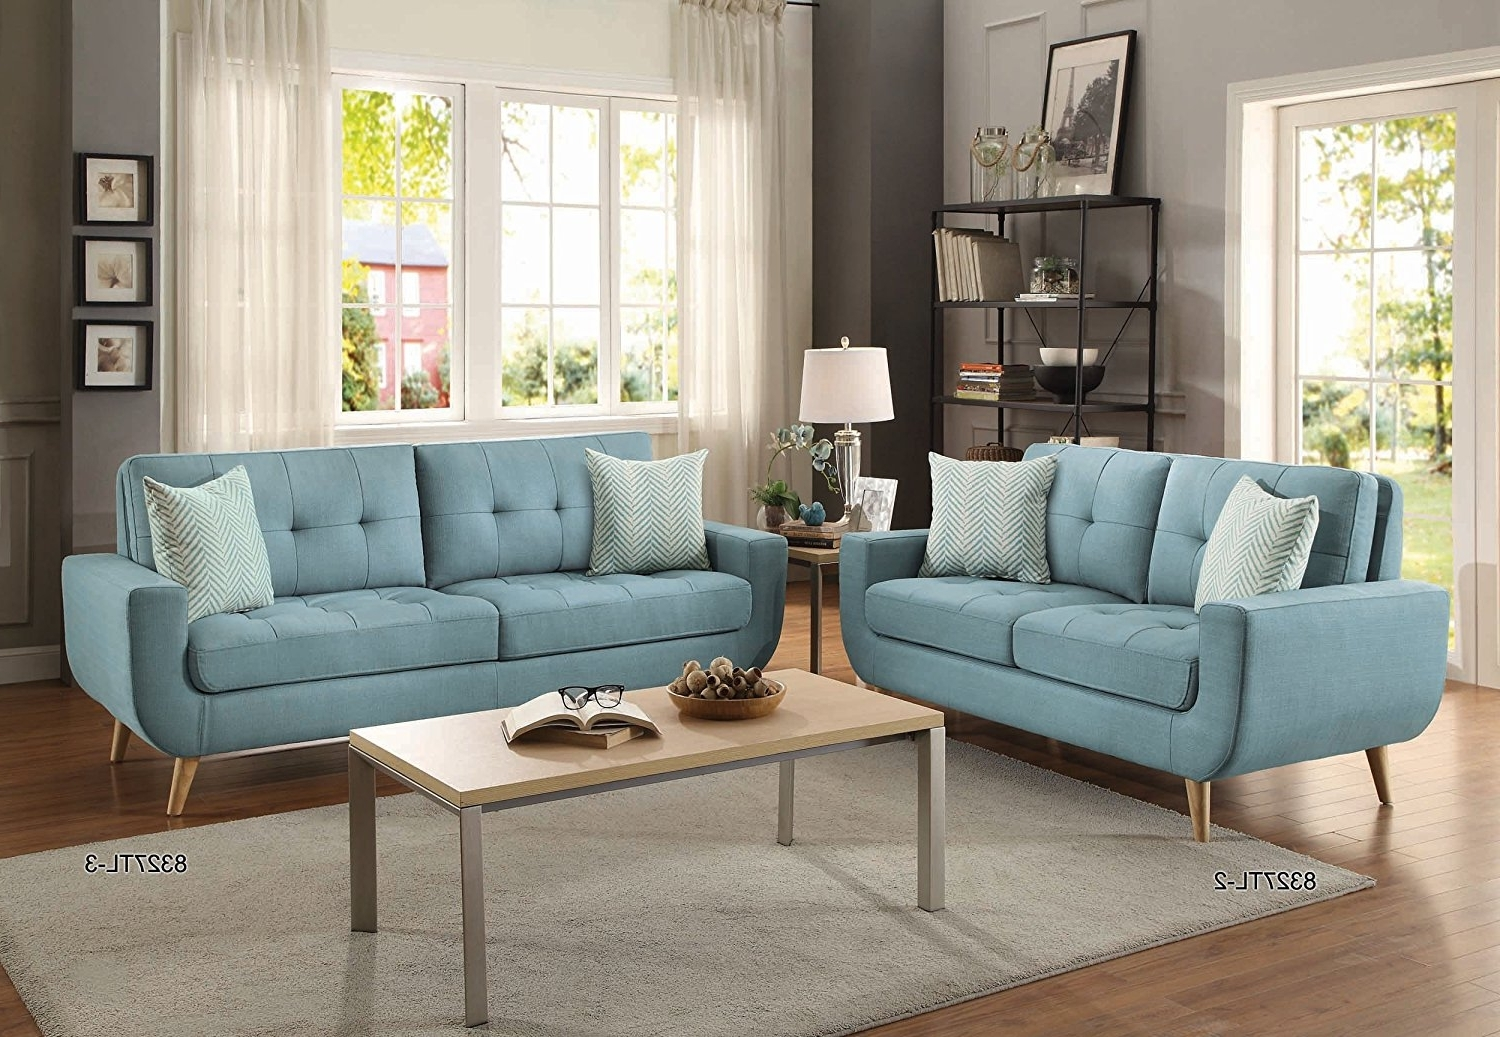 Sectional Sofas At Barrie Throughout Favorite Furniture : Klaussner Hybrid Sofa Sofa Sale January Klaussner (View 15 of 20)